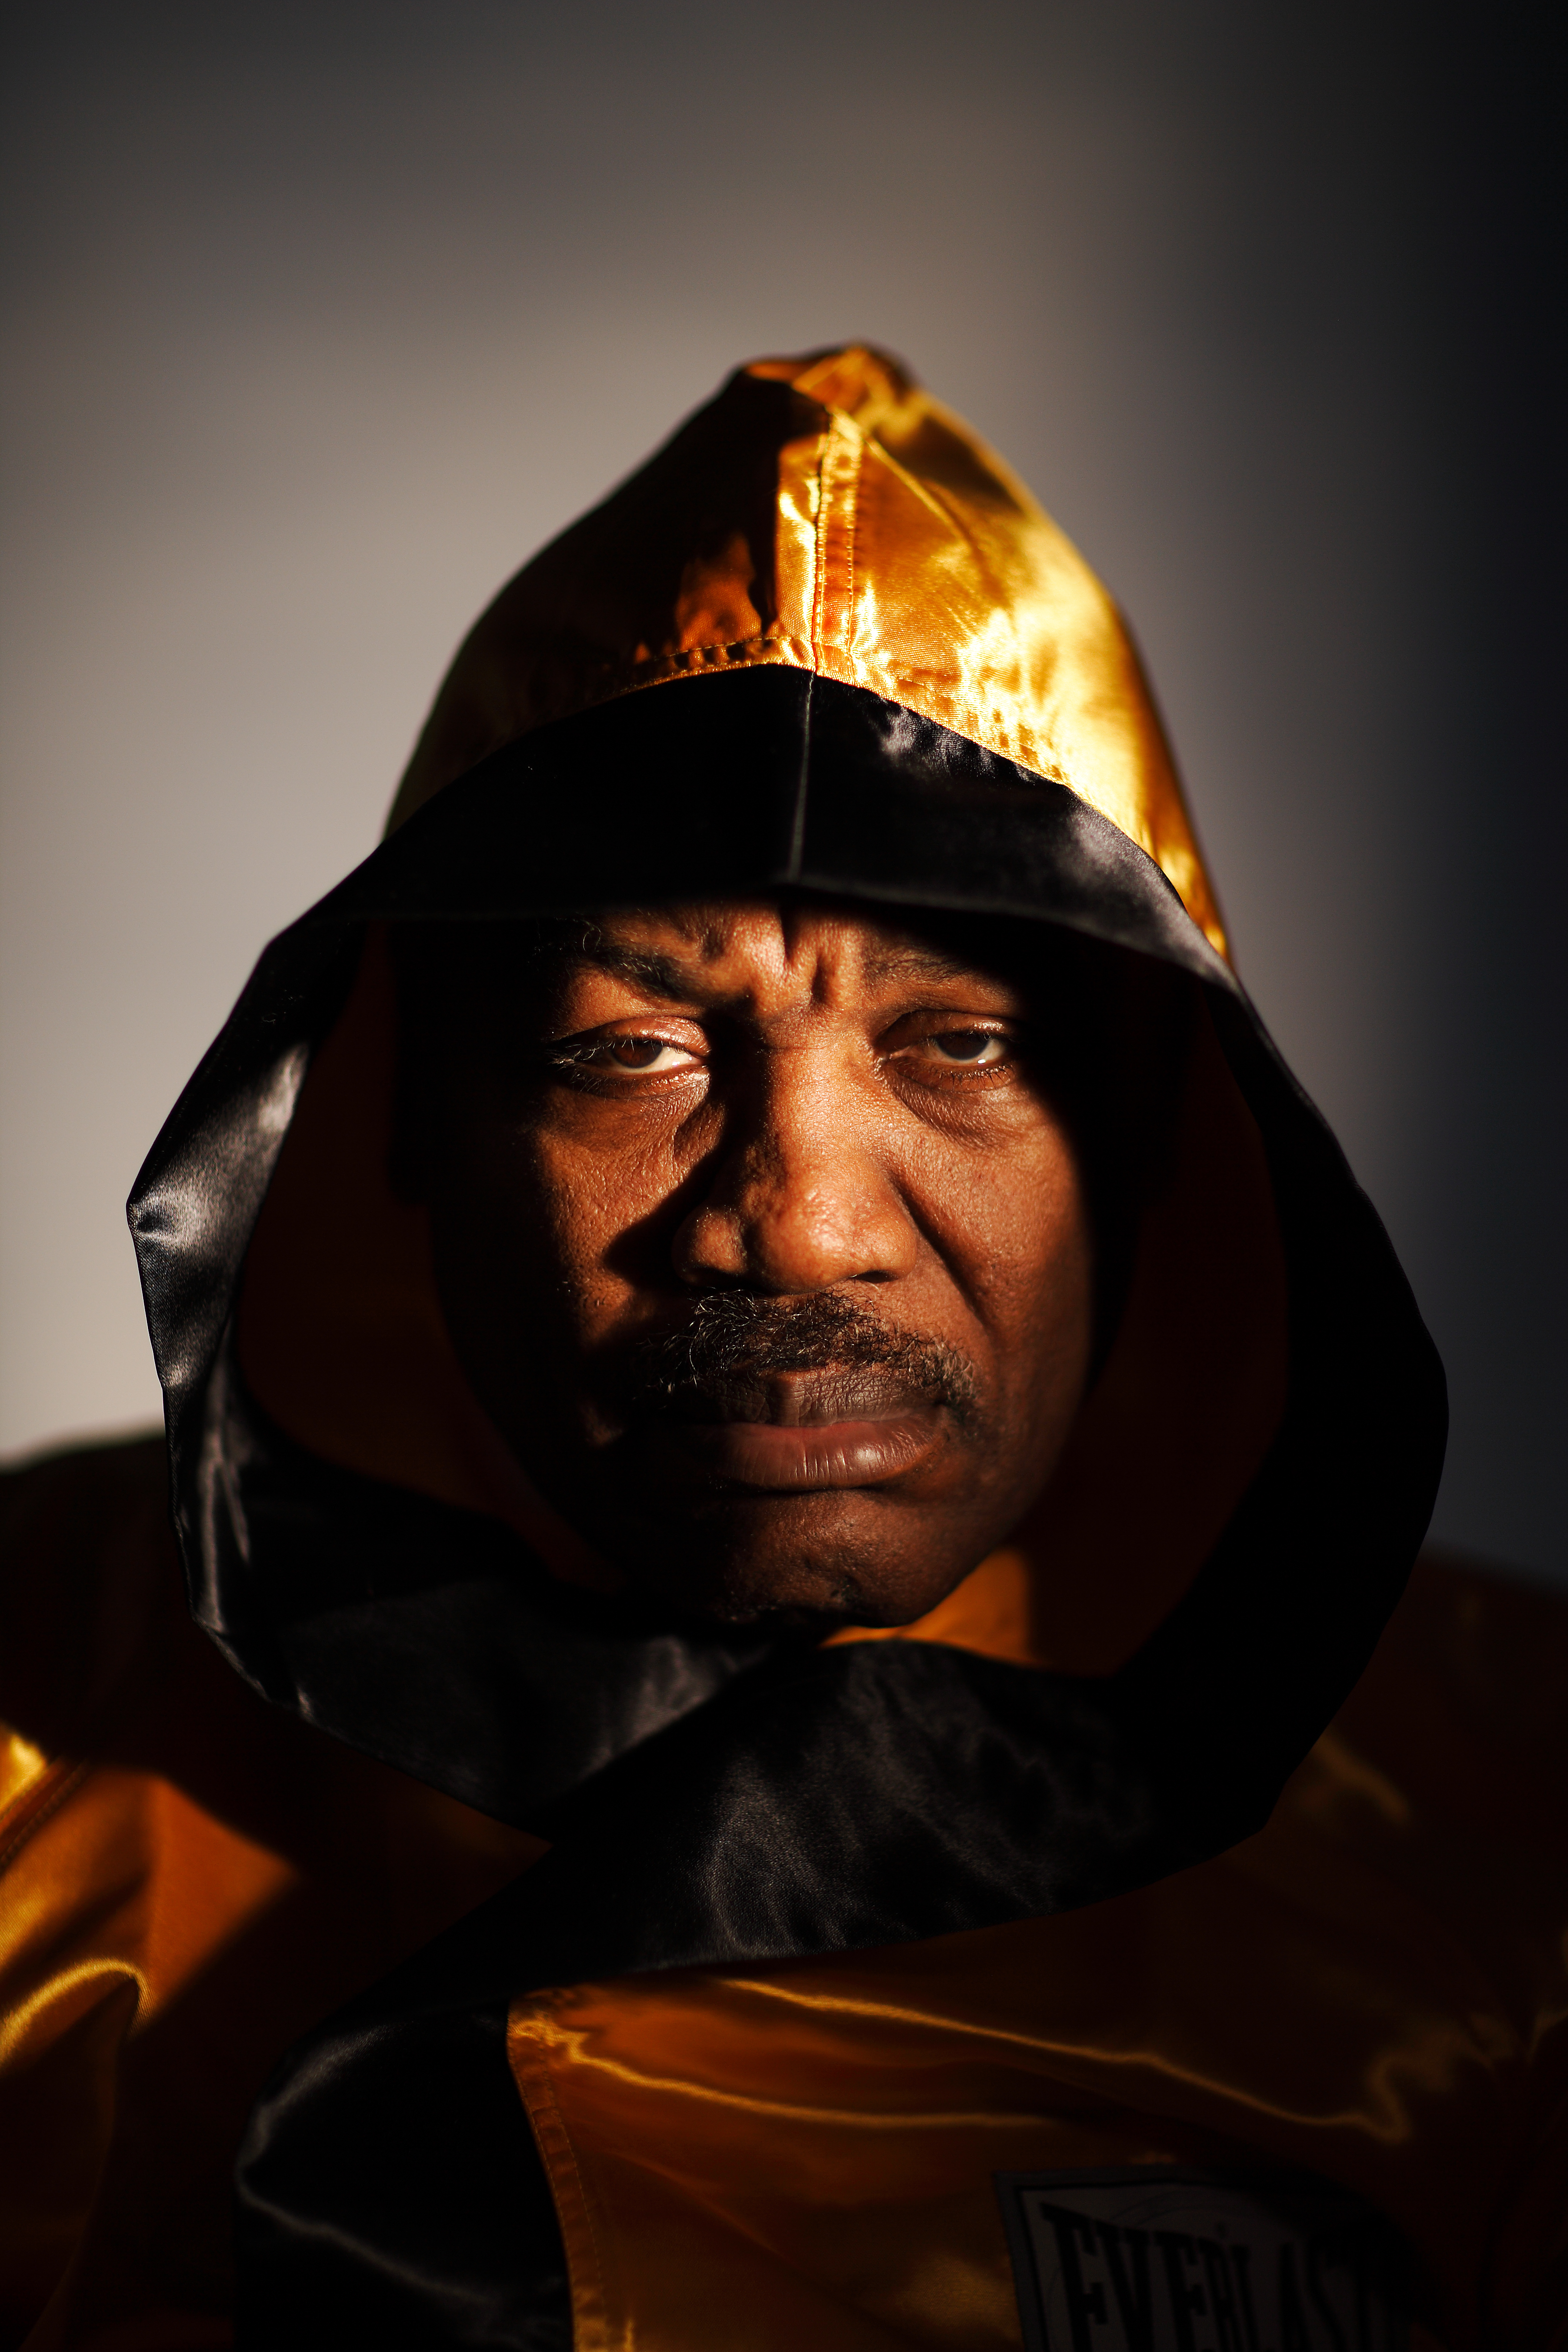 PHILADELPHIA - MARCH 18:  Joe Frazier, the former Heavyweight Champion of the World poses for a portrait at his boxing gym on March 18, 2009 in Philadelphia, Pennsylvania.  (Photo by Al Bello/Getty Images)